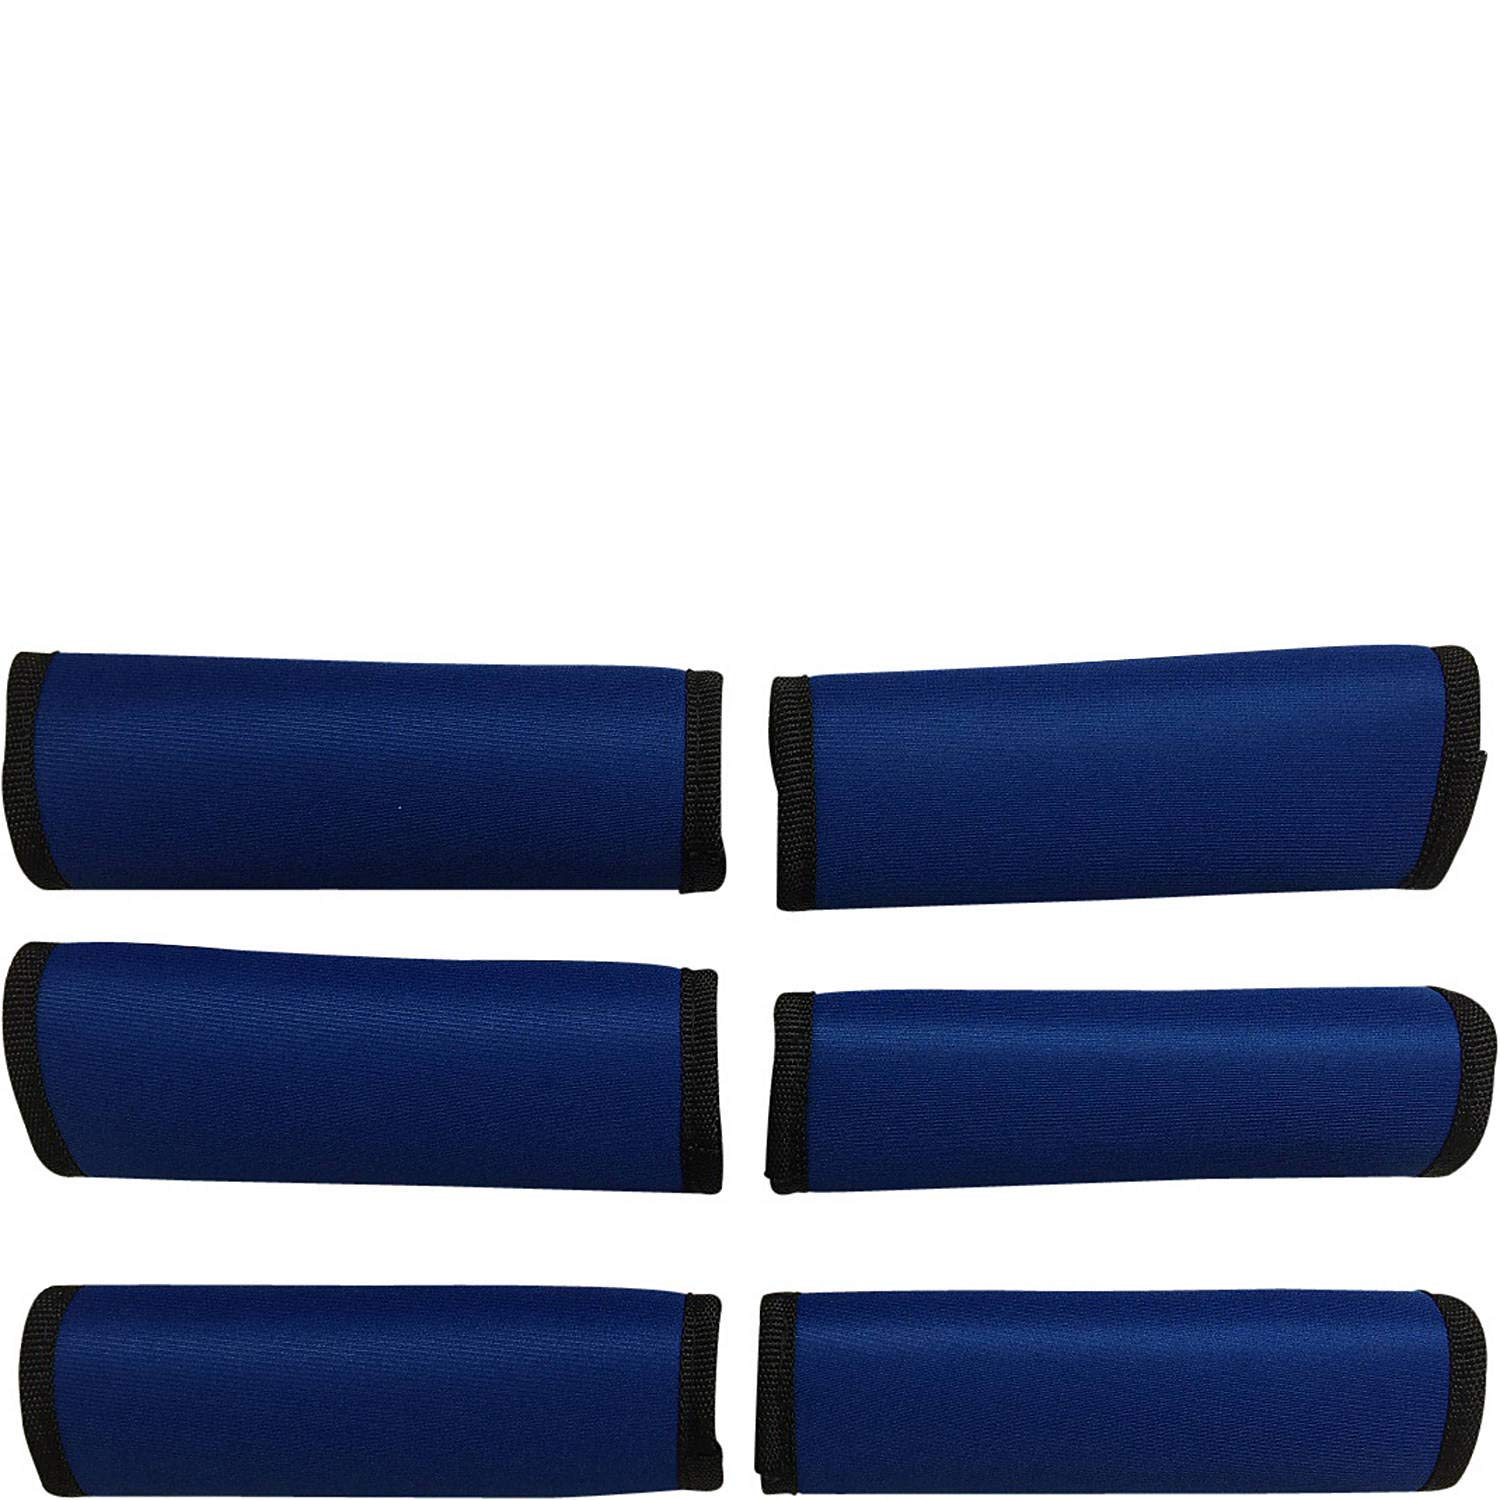 50% OFF! LUGGAGE SPOTTER SUPER GRABBER - 6 ROYAL BLUE Soft Comfort Neoprene Handle Wrap Grip Luggage Identifier for Travel Bags Suitcases Heavy Grocery Bags Wraps Around Just About Anything!